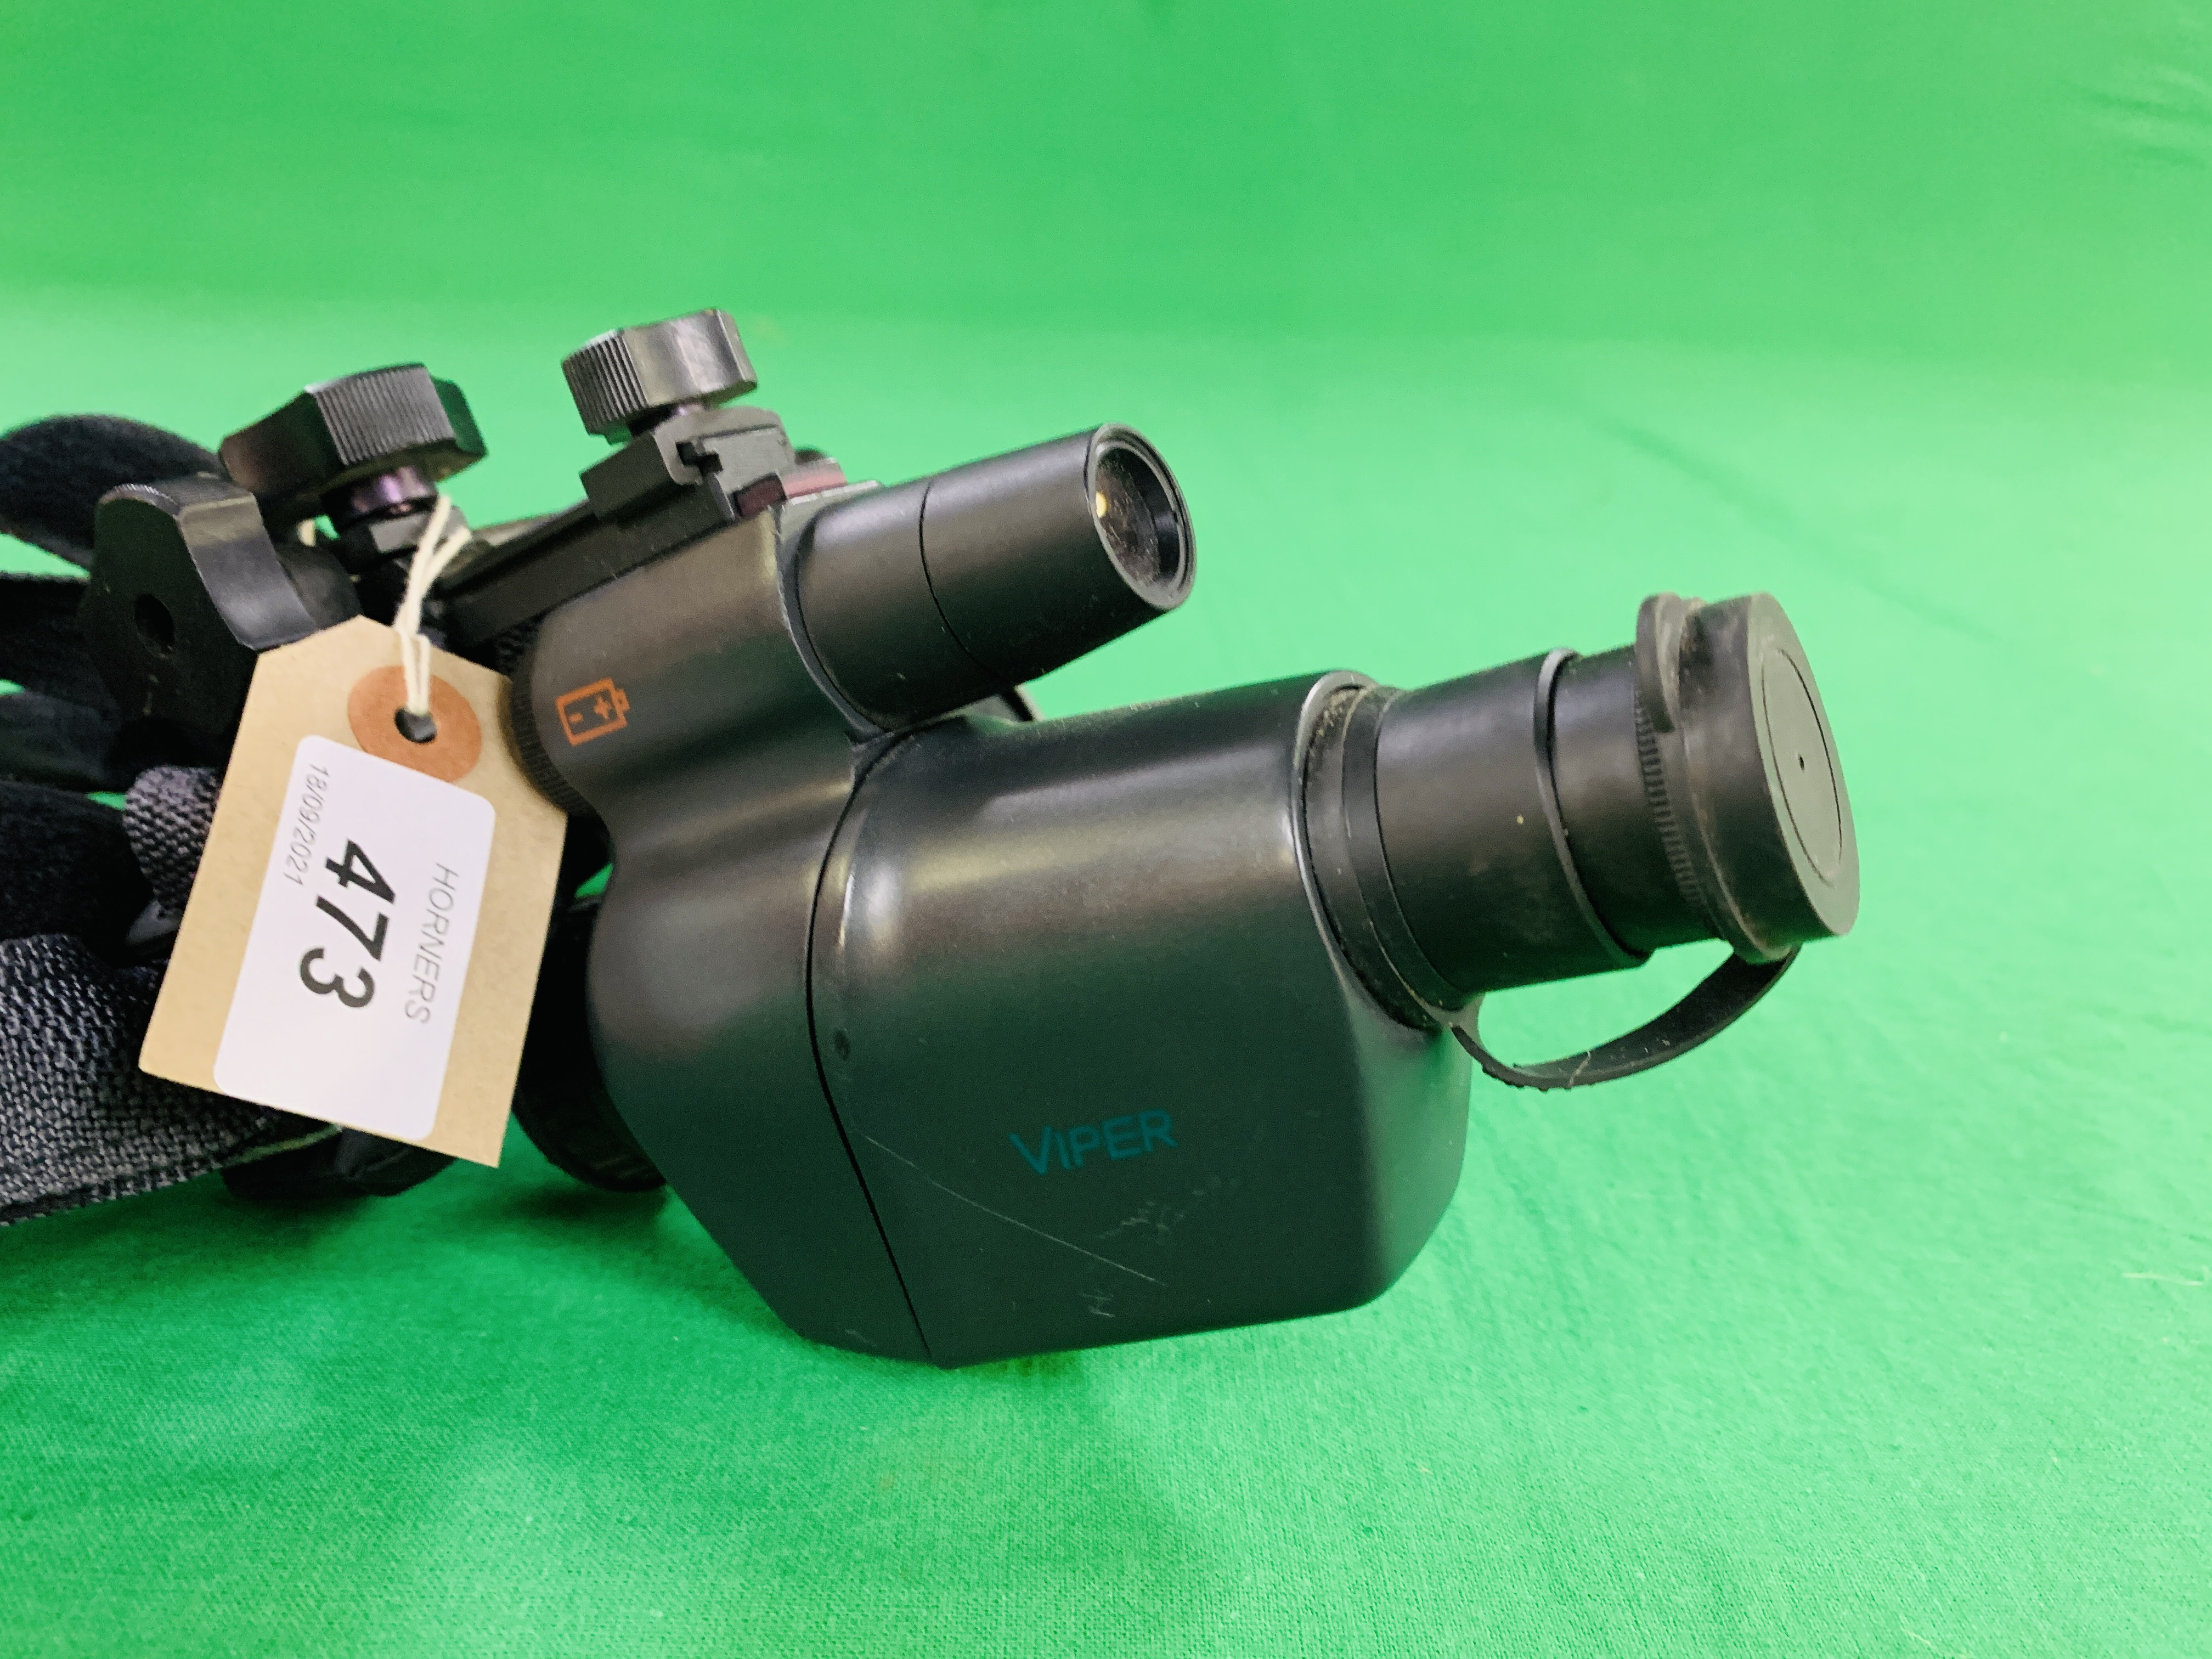 A ATN VIPER NIGHT VISION MONOCULAR INFERRED SITE WITH HEAD BAND - Image 2 of 6